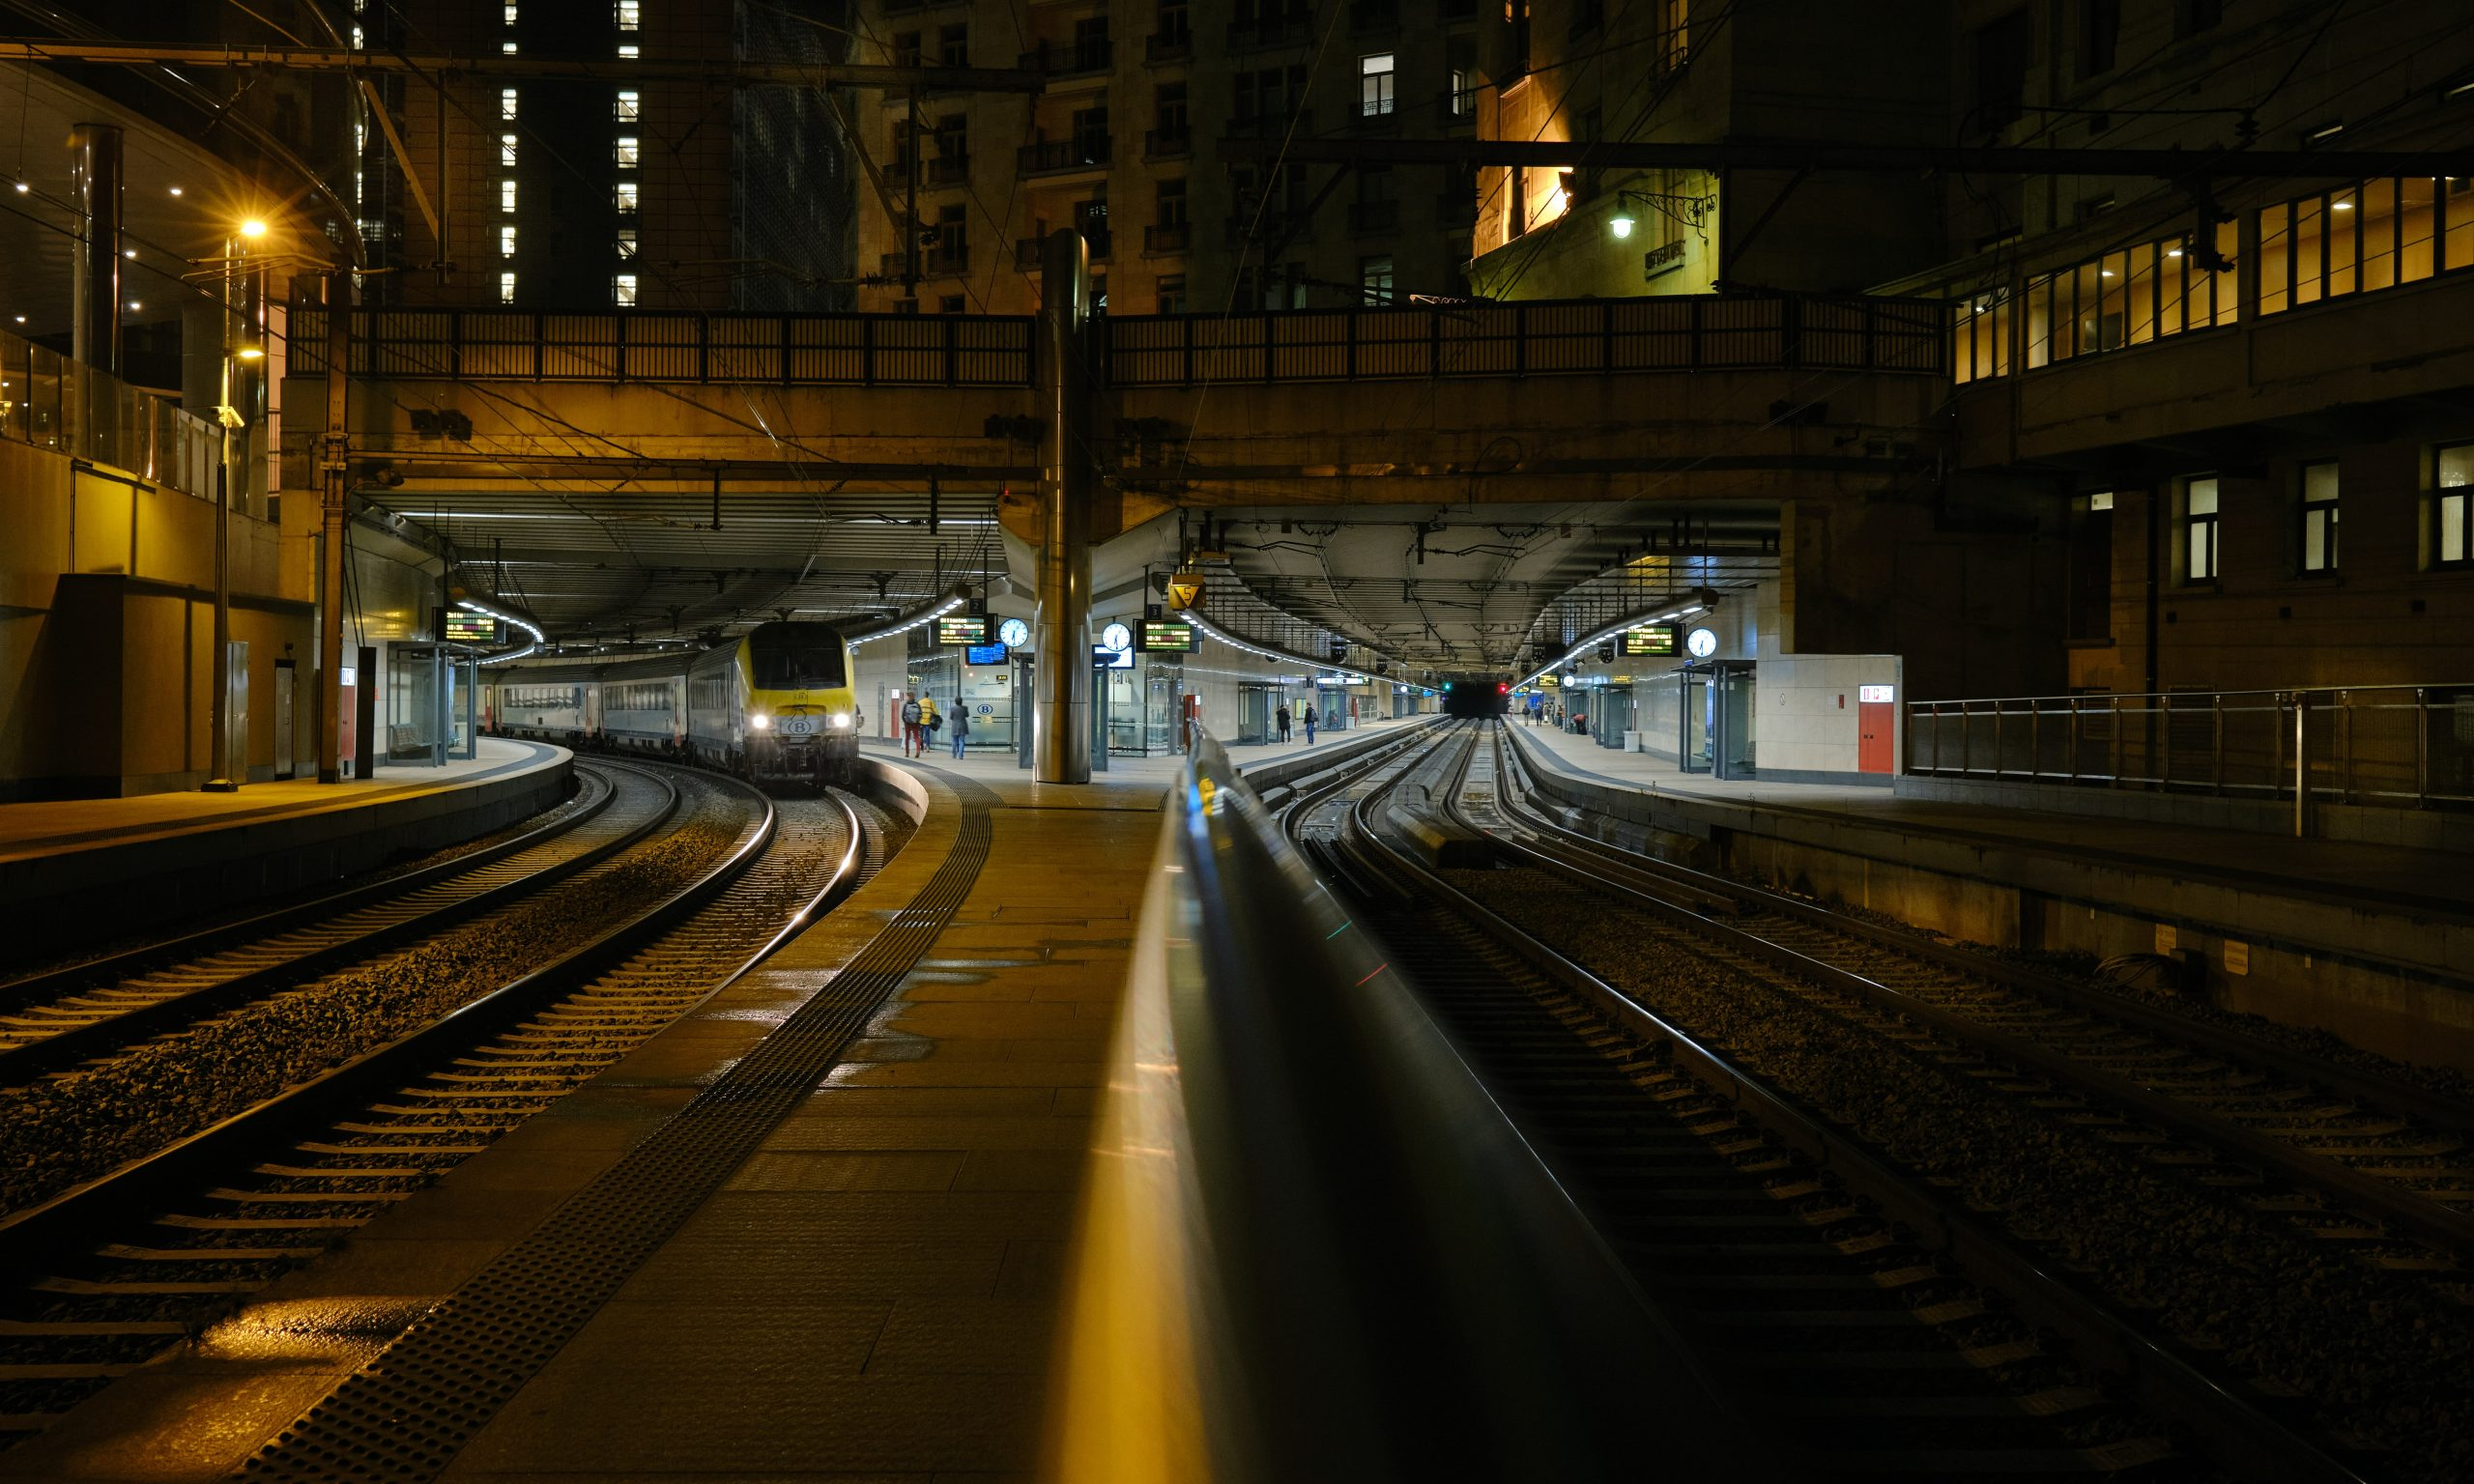 Metro at Night Wallpaper